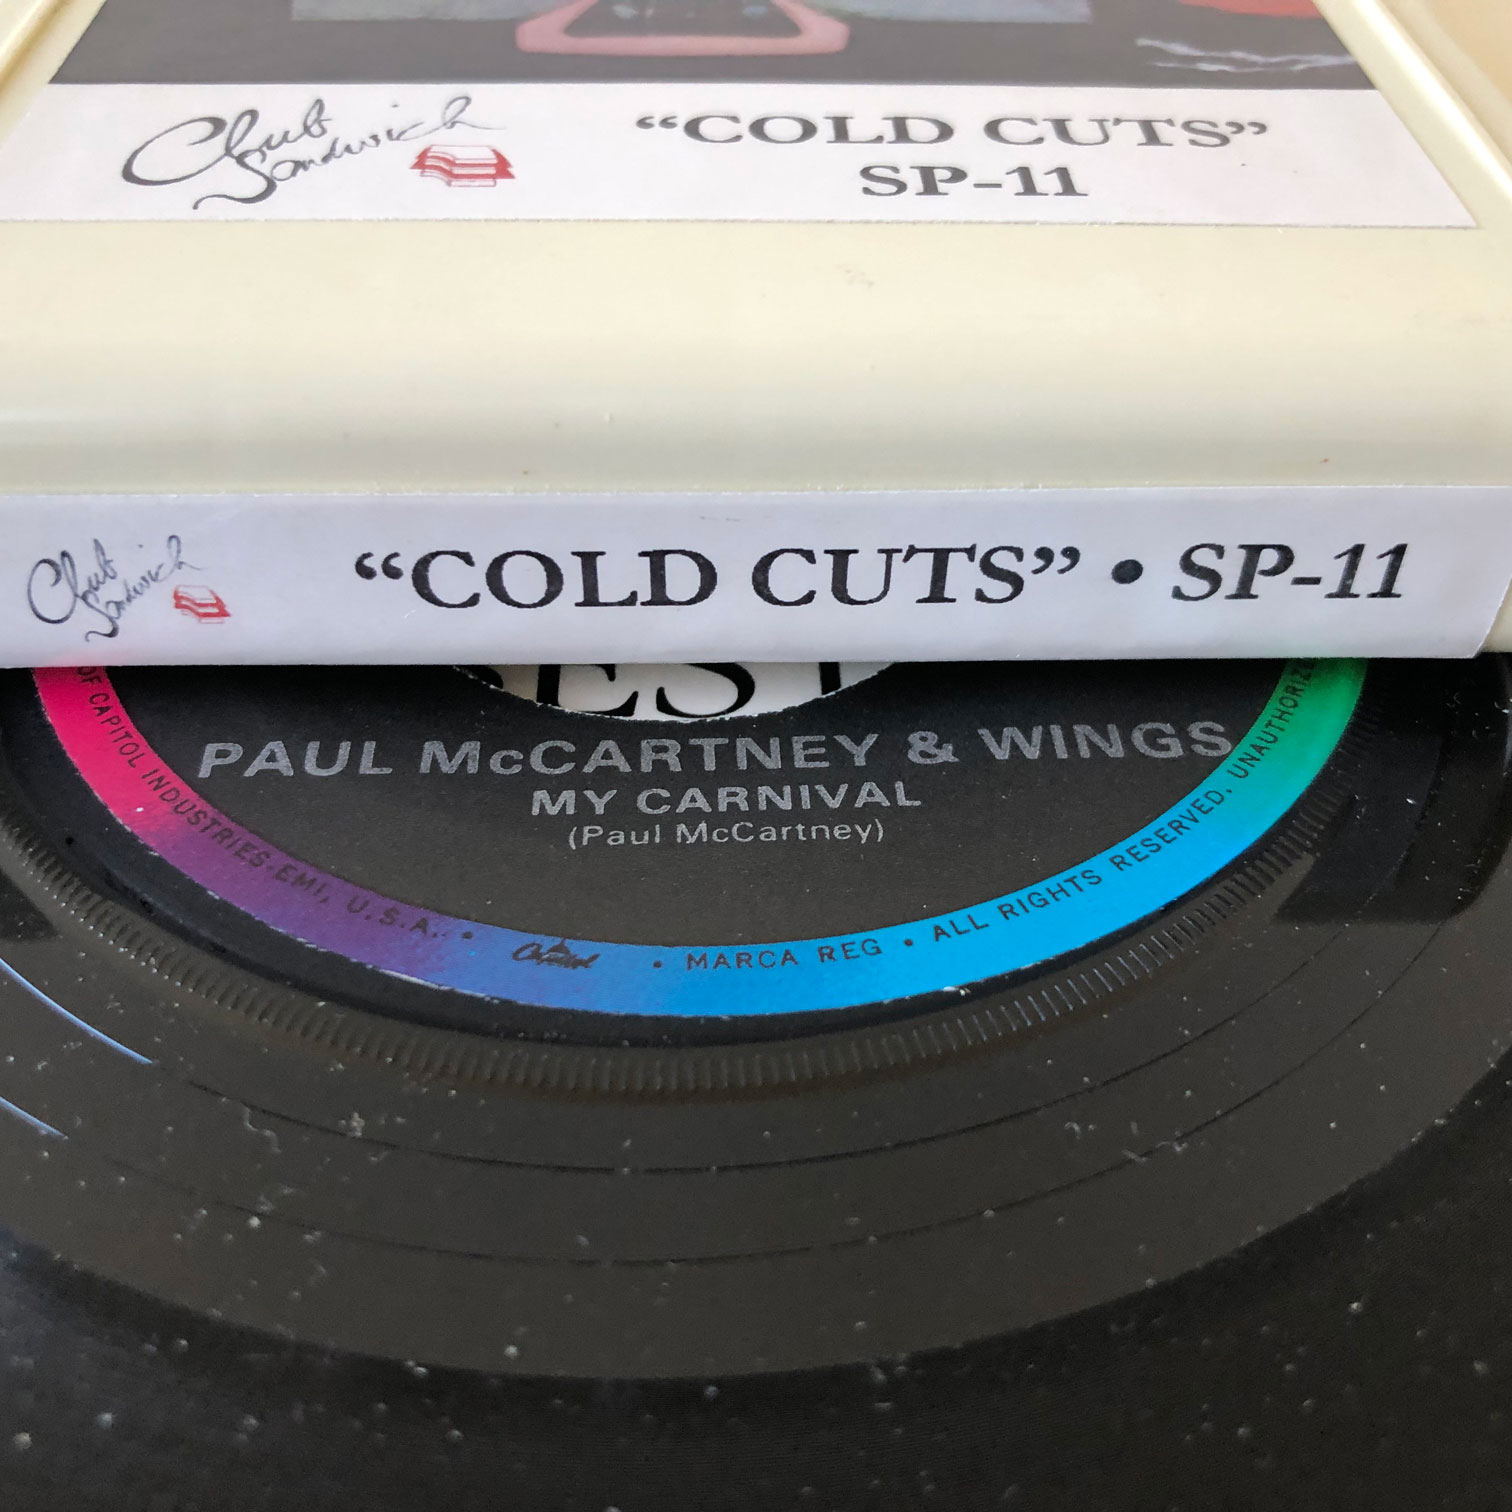 8-Trackin': Paul McCartney, 'Cold Cuts' (Custom 8-Track